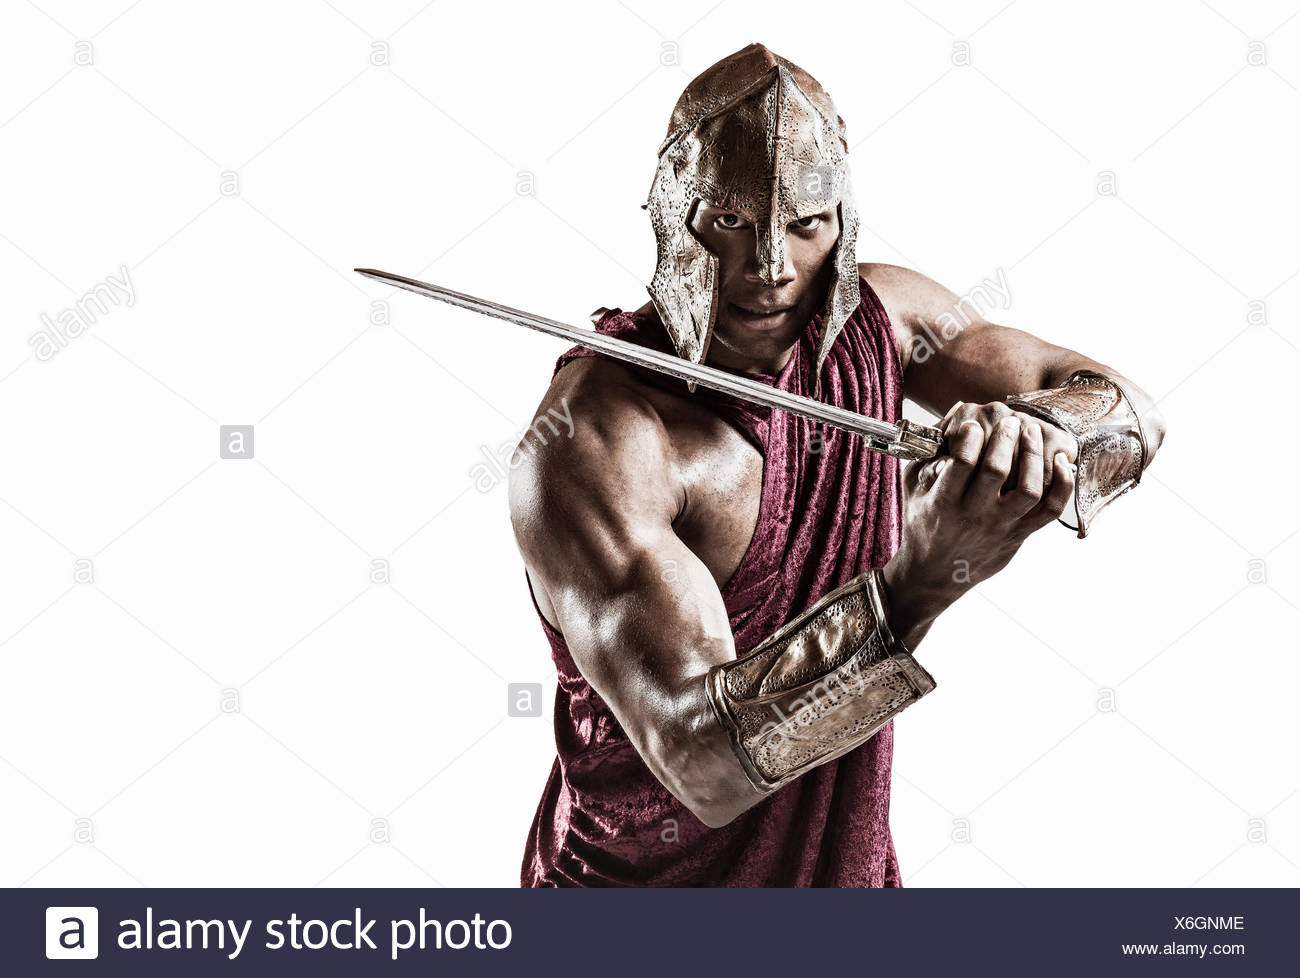 Studio portrait of muscular young man dressed as gladiator with helmet and sword - Stock Image